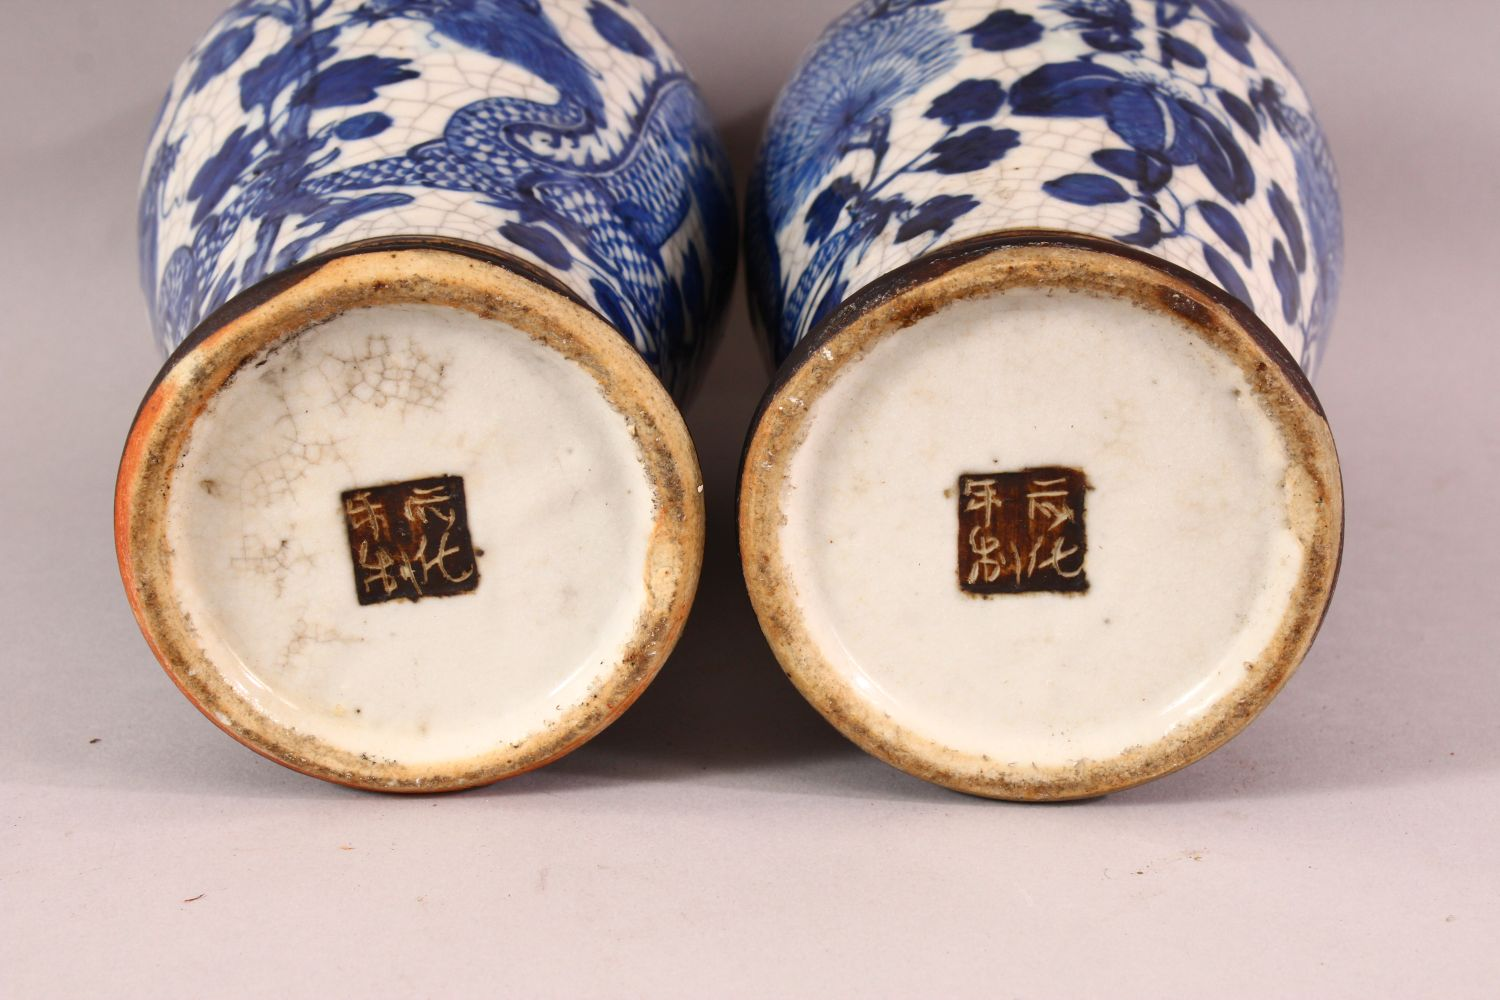 TWO 19TH CENTURY CHINESE BLUE & WHITE PORCELAIN VASES & ONE COVER, the body of the vases decorated - Image 8 of 10